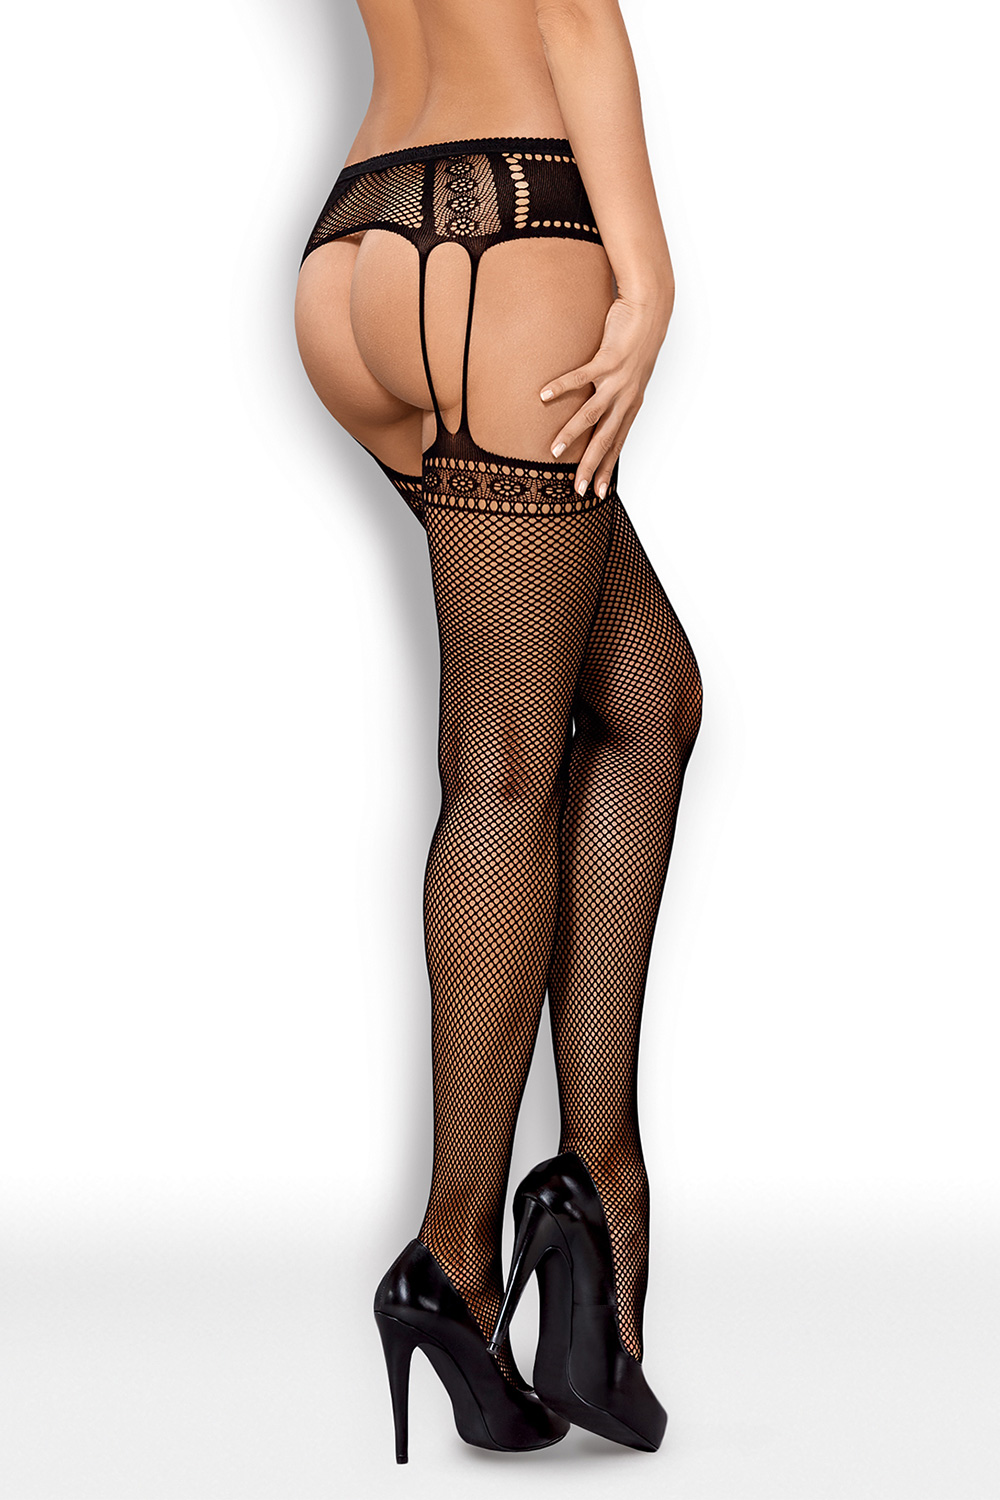 kabaretka Obsessive Garter stockings S227 - zoom